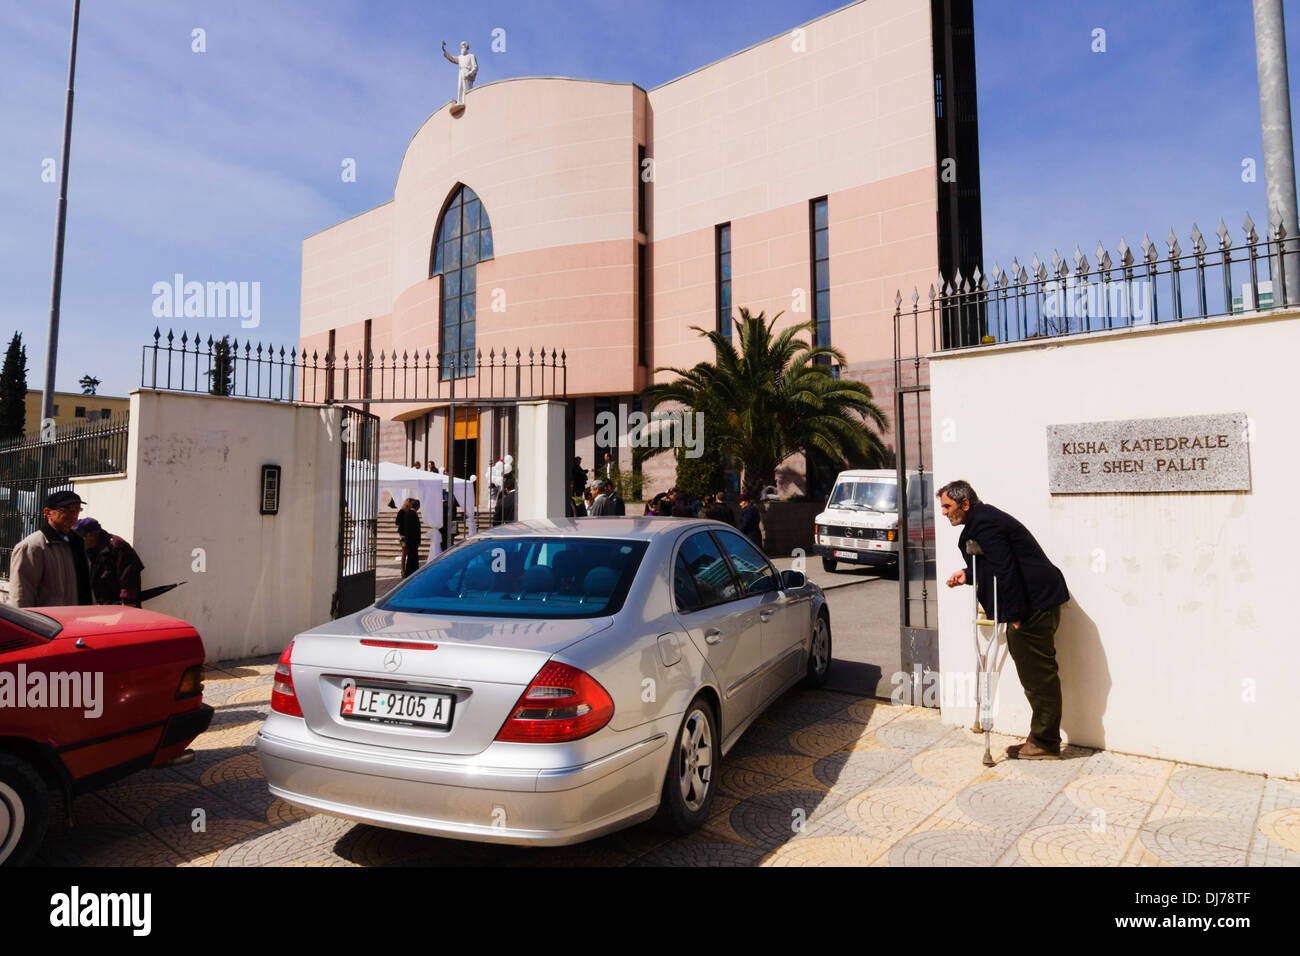 Beggar and luxury car at the entrance of St Paul's Catholic Cathedral. Tirana, Albania - Stock Image